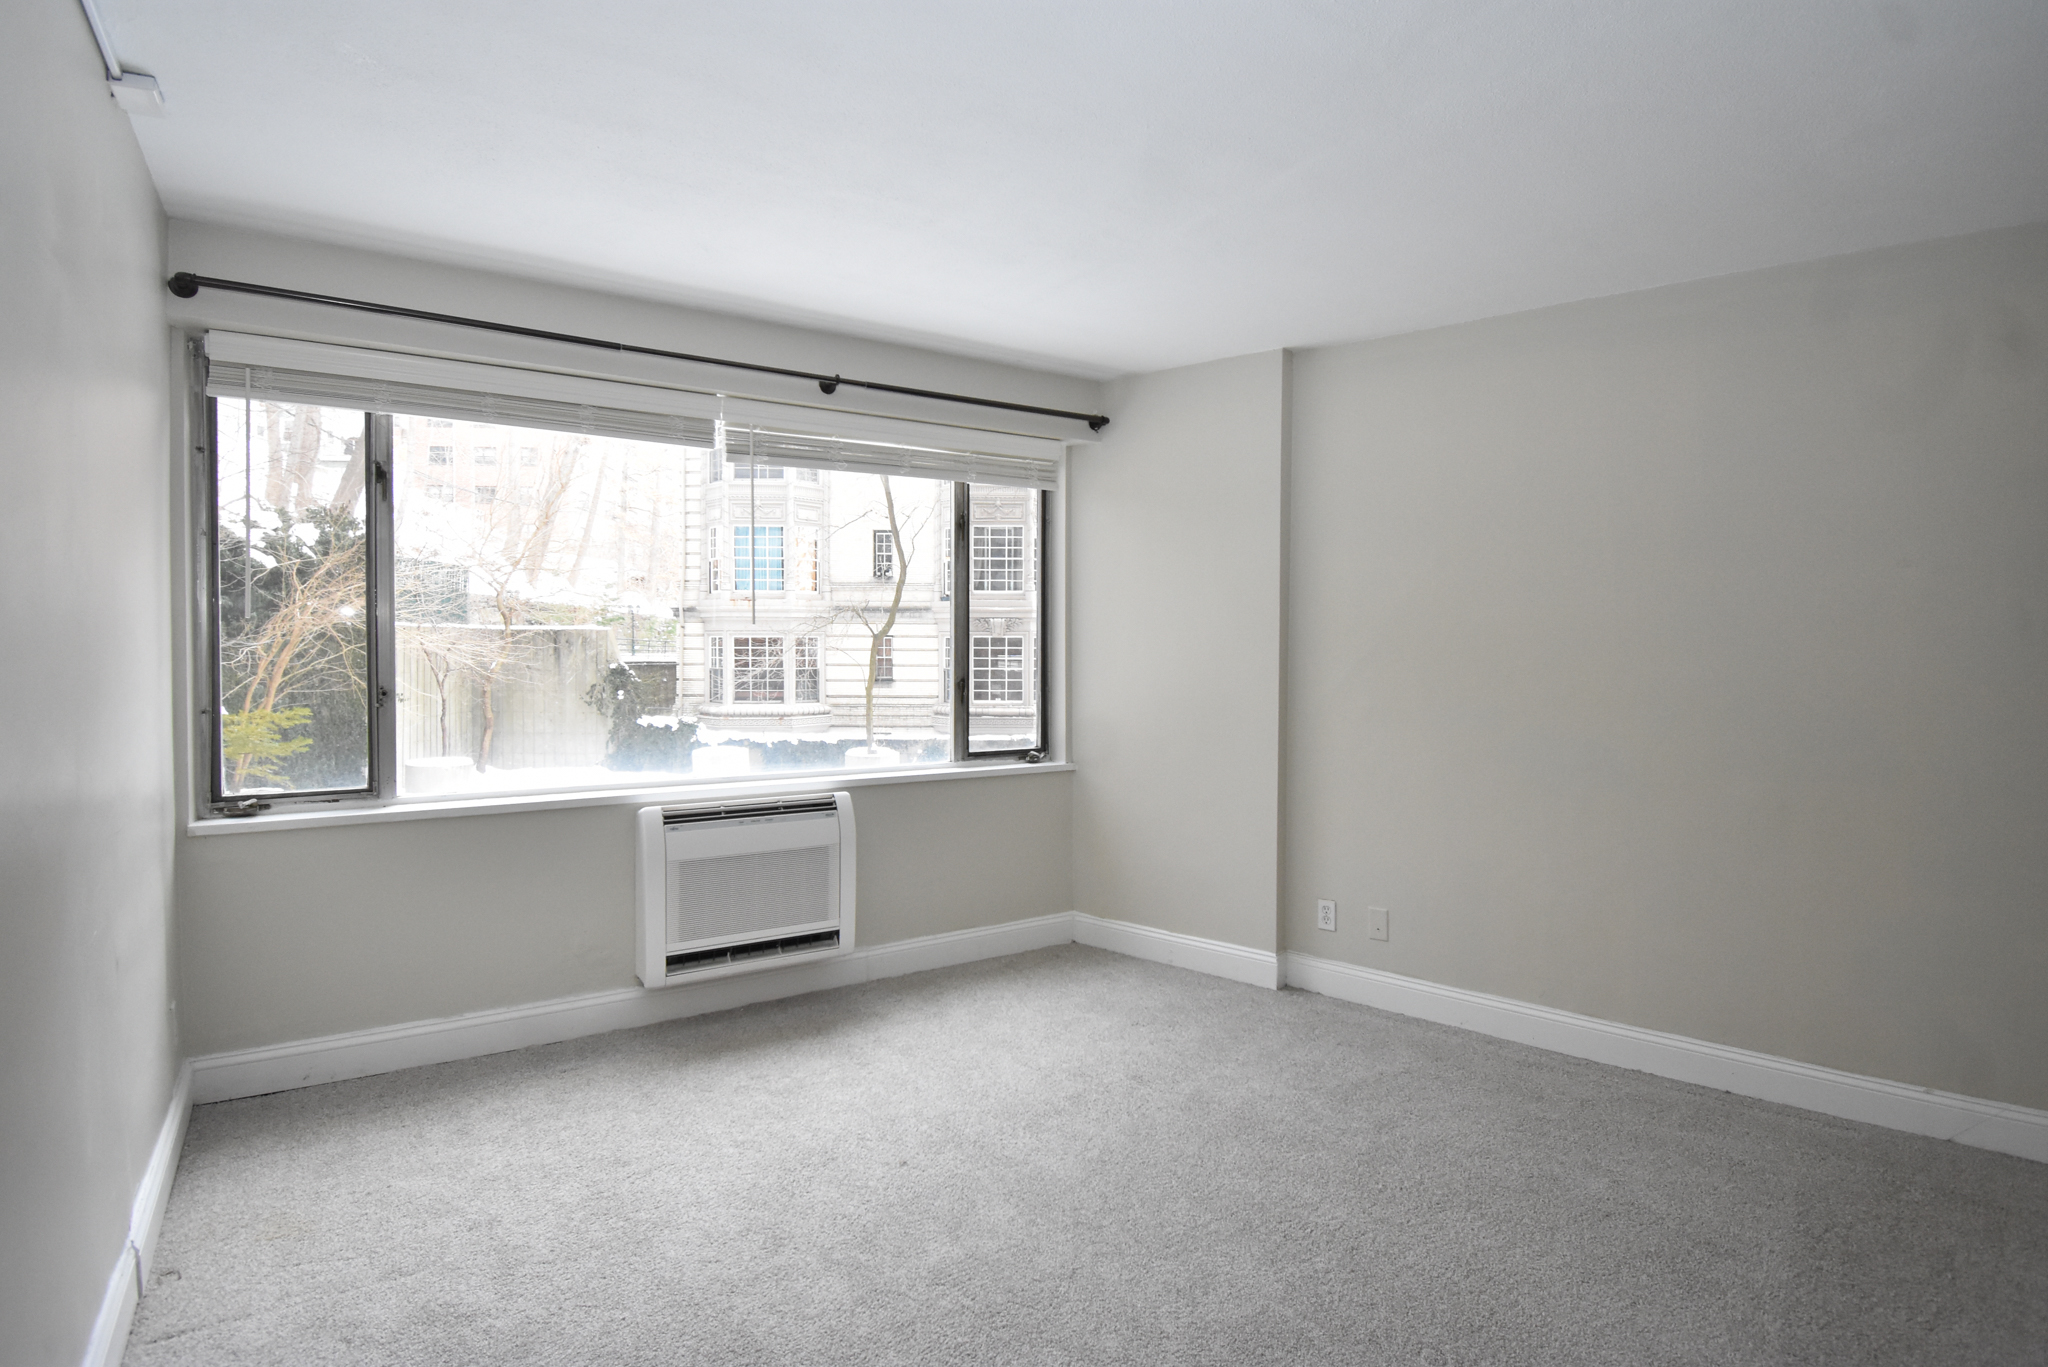 1 Bed, 1 Bath apartment in Brookline, Washington Square for $2,350